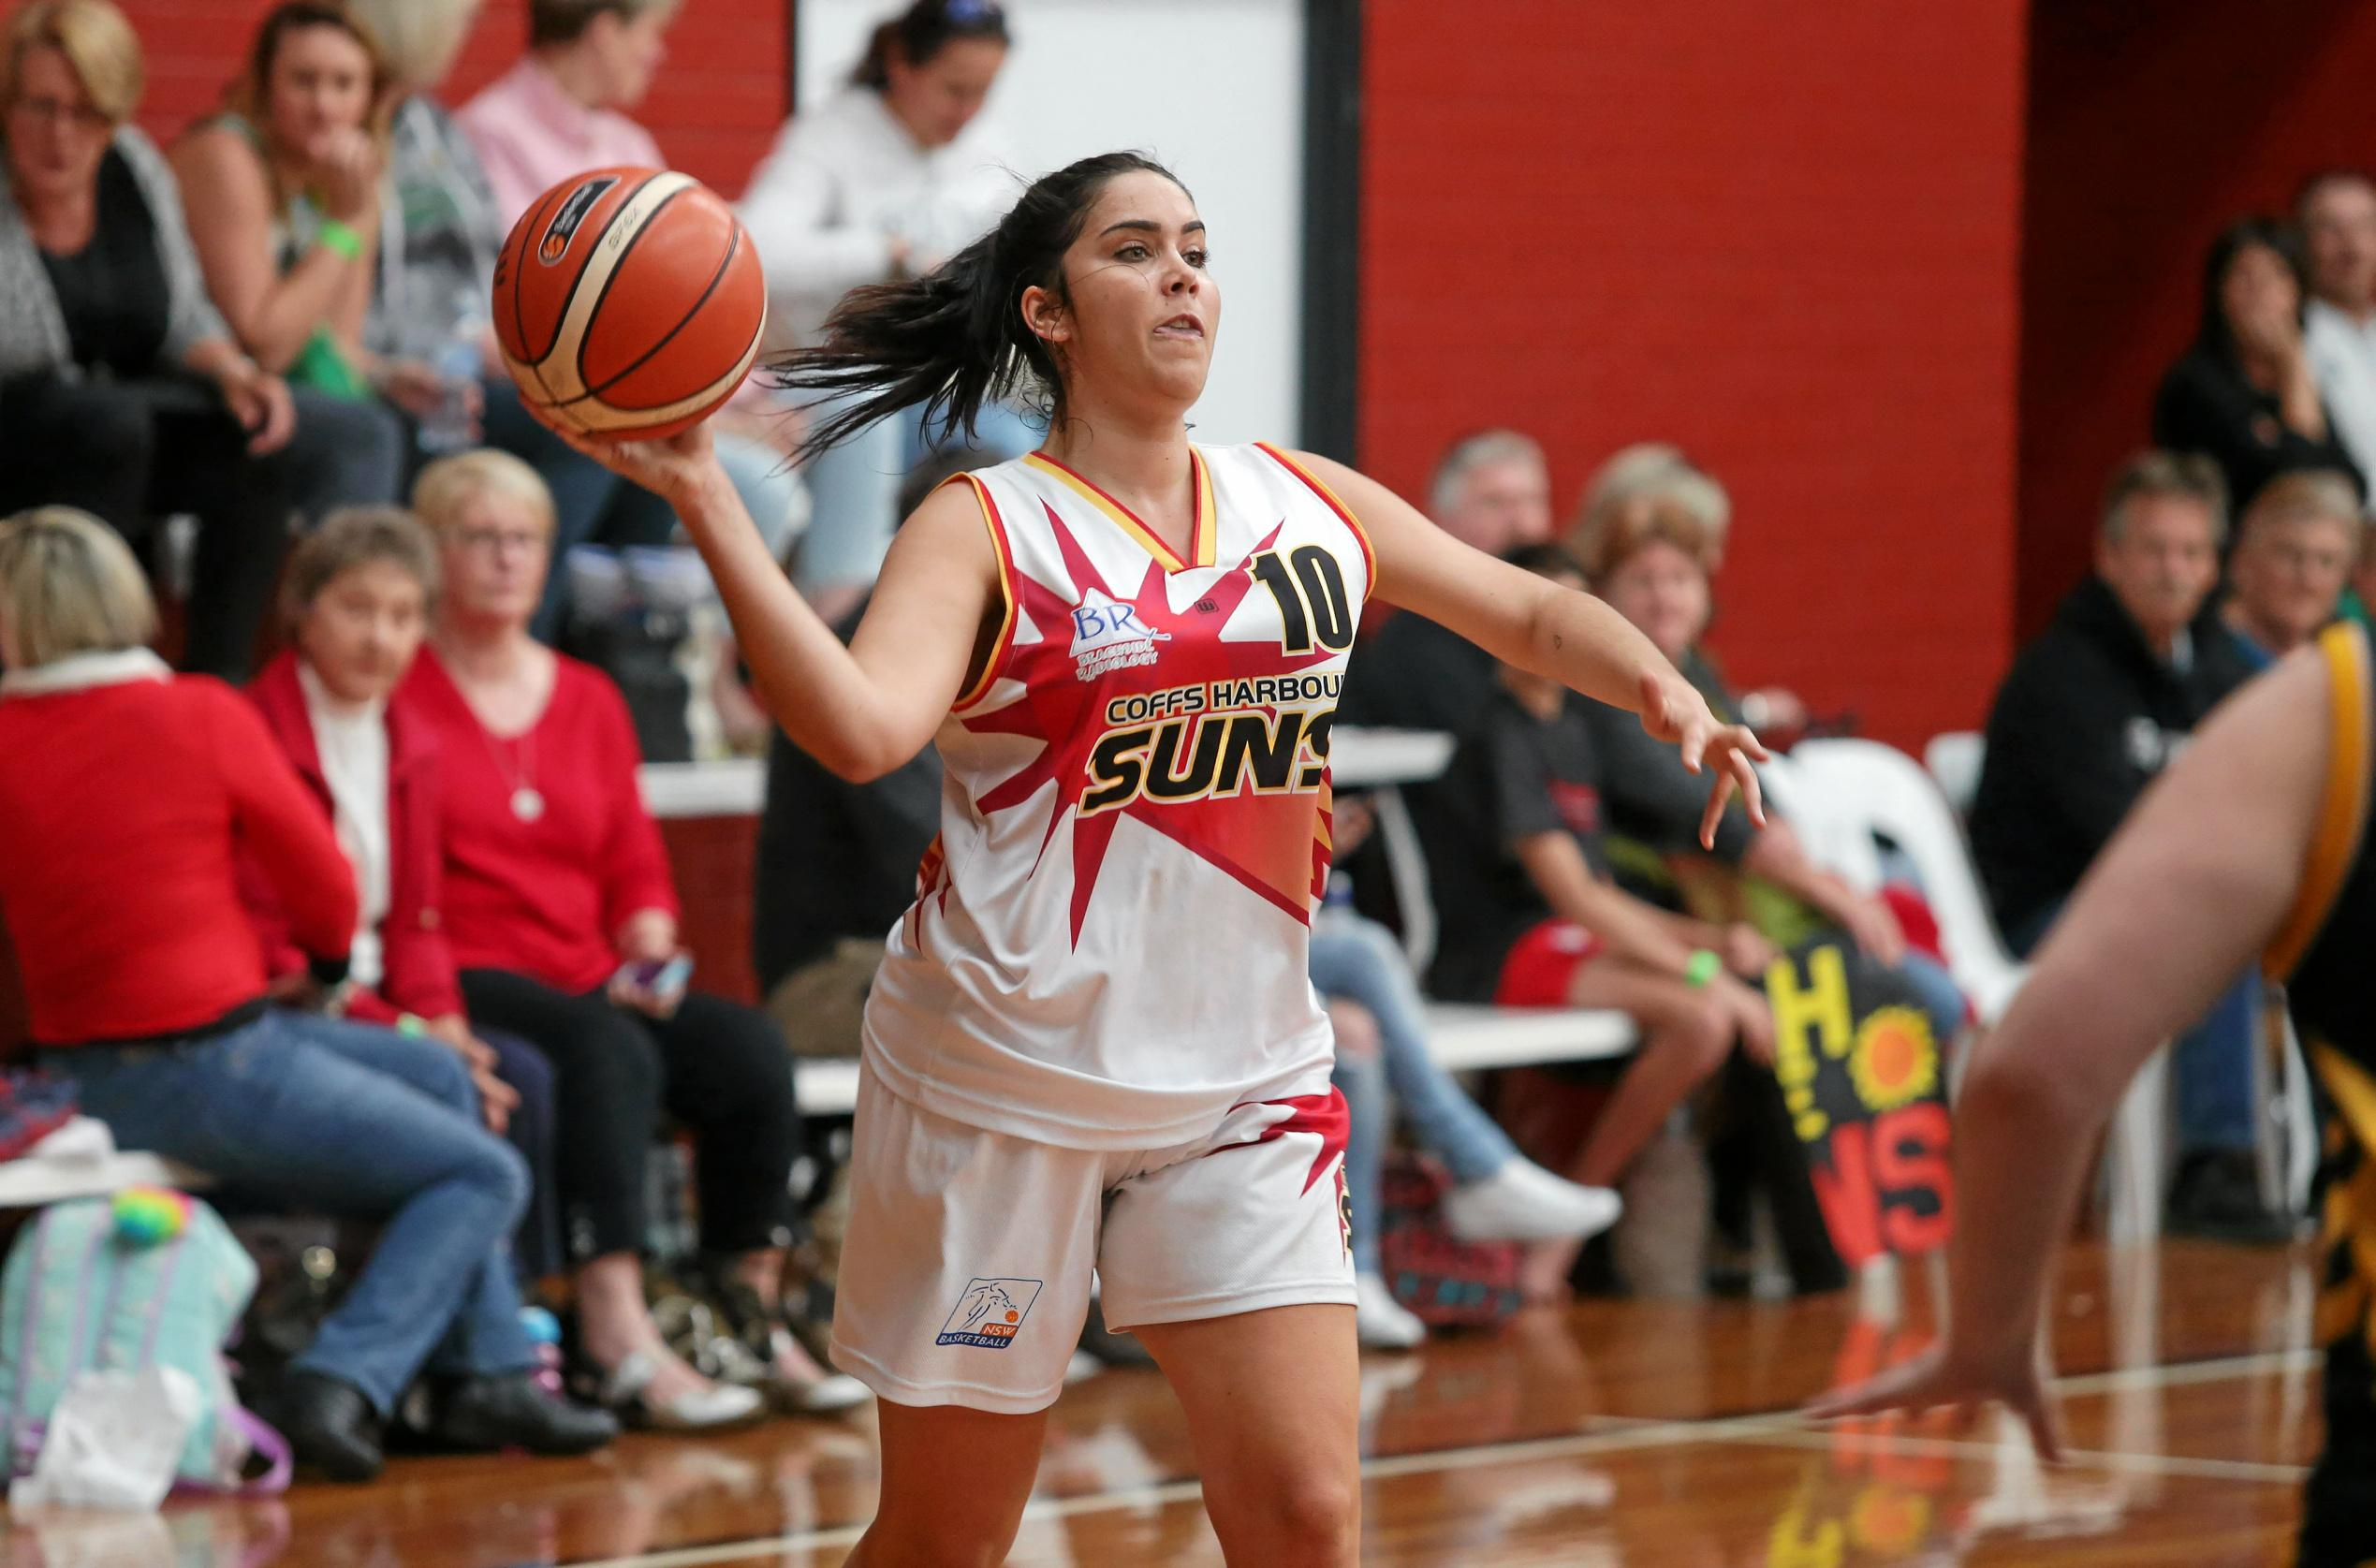 Laura Bamford-Cleland of the Coffs Harbour Suns is the leading scorer in the Waratah League's Division 1 Women competition.